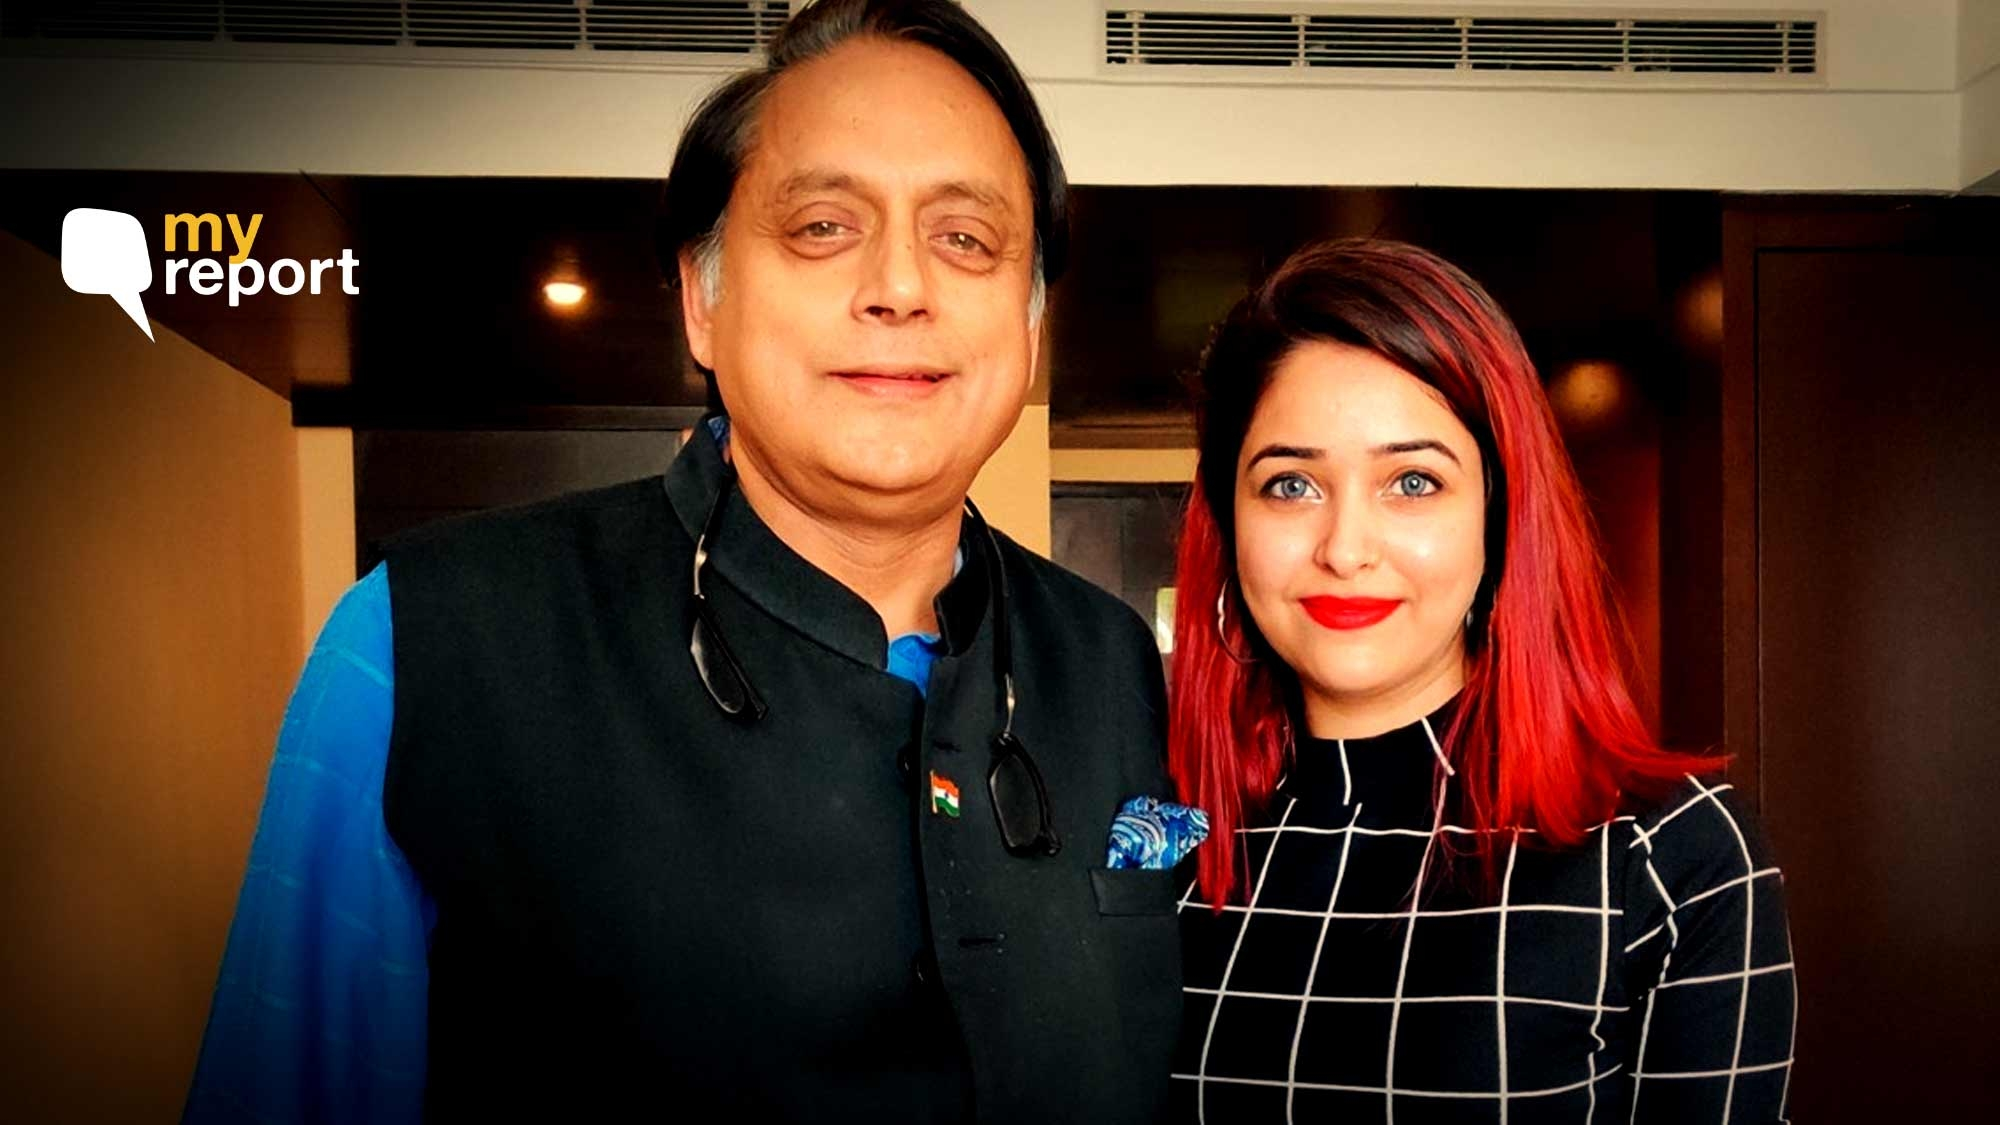 Trolls Misusing My Photo With Tharoor – Take Your Sexism Elsewhere